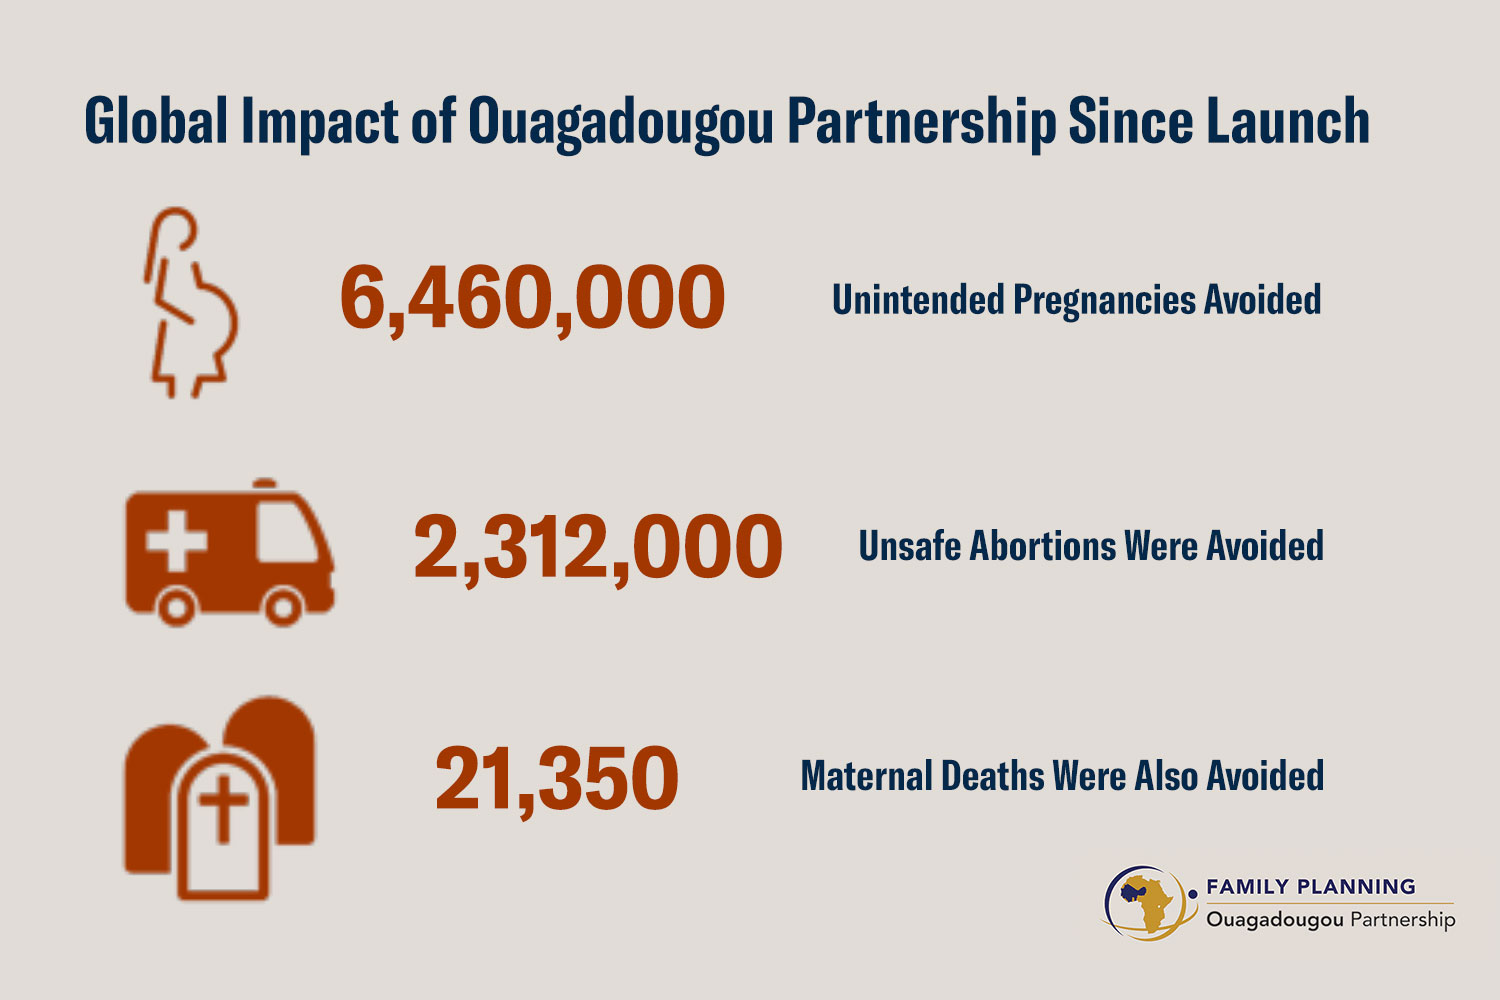 The chart shows three statistics 6,460,000 unintended pregnancies avoided, 2,312,000 unsafe abortions avoided, and 21,350 maternal deaths avoided.